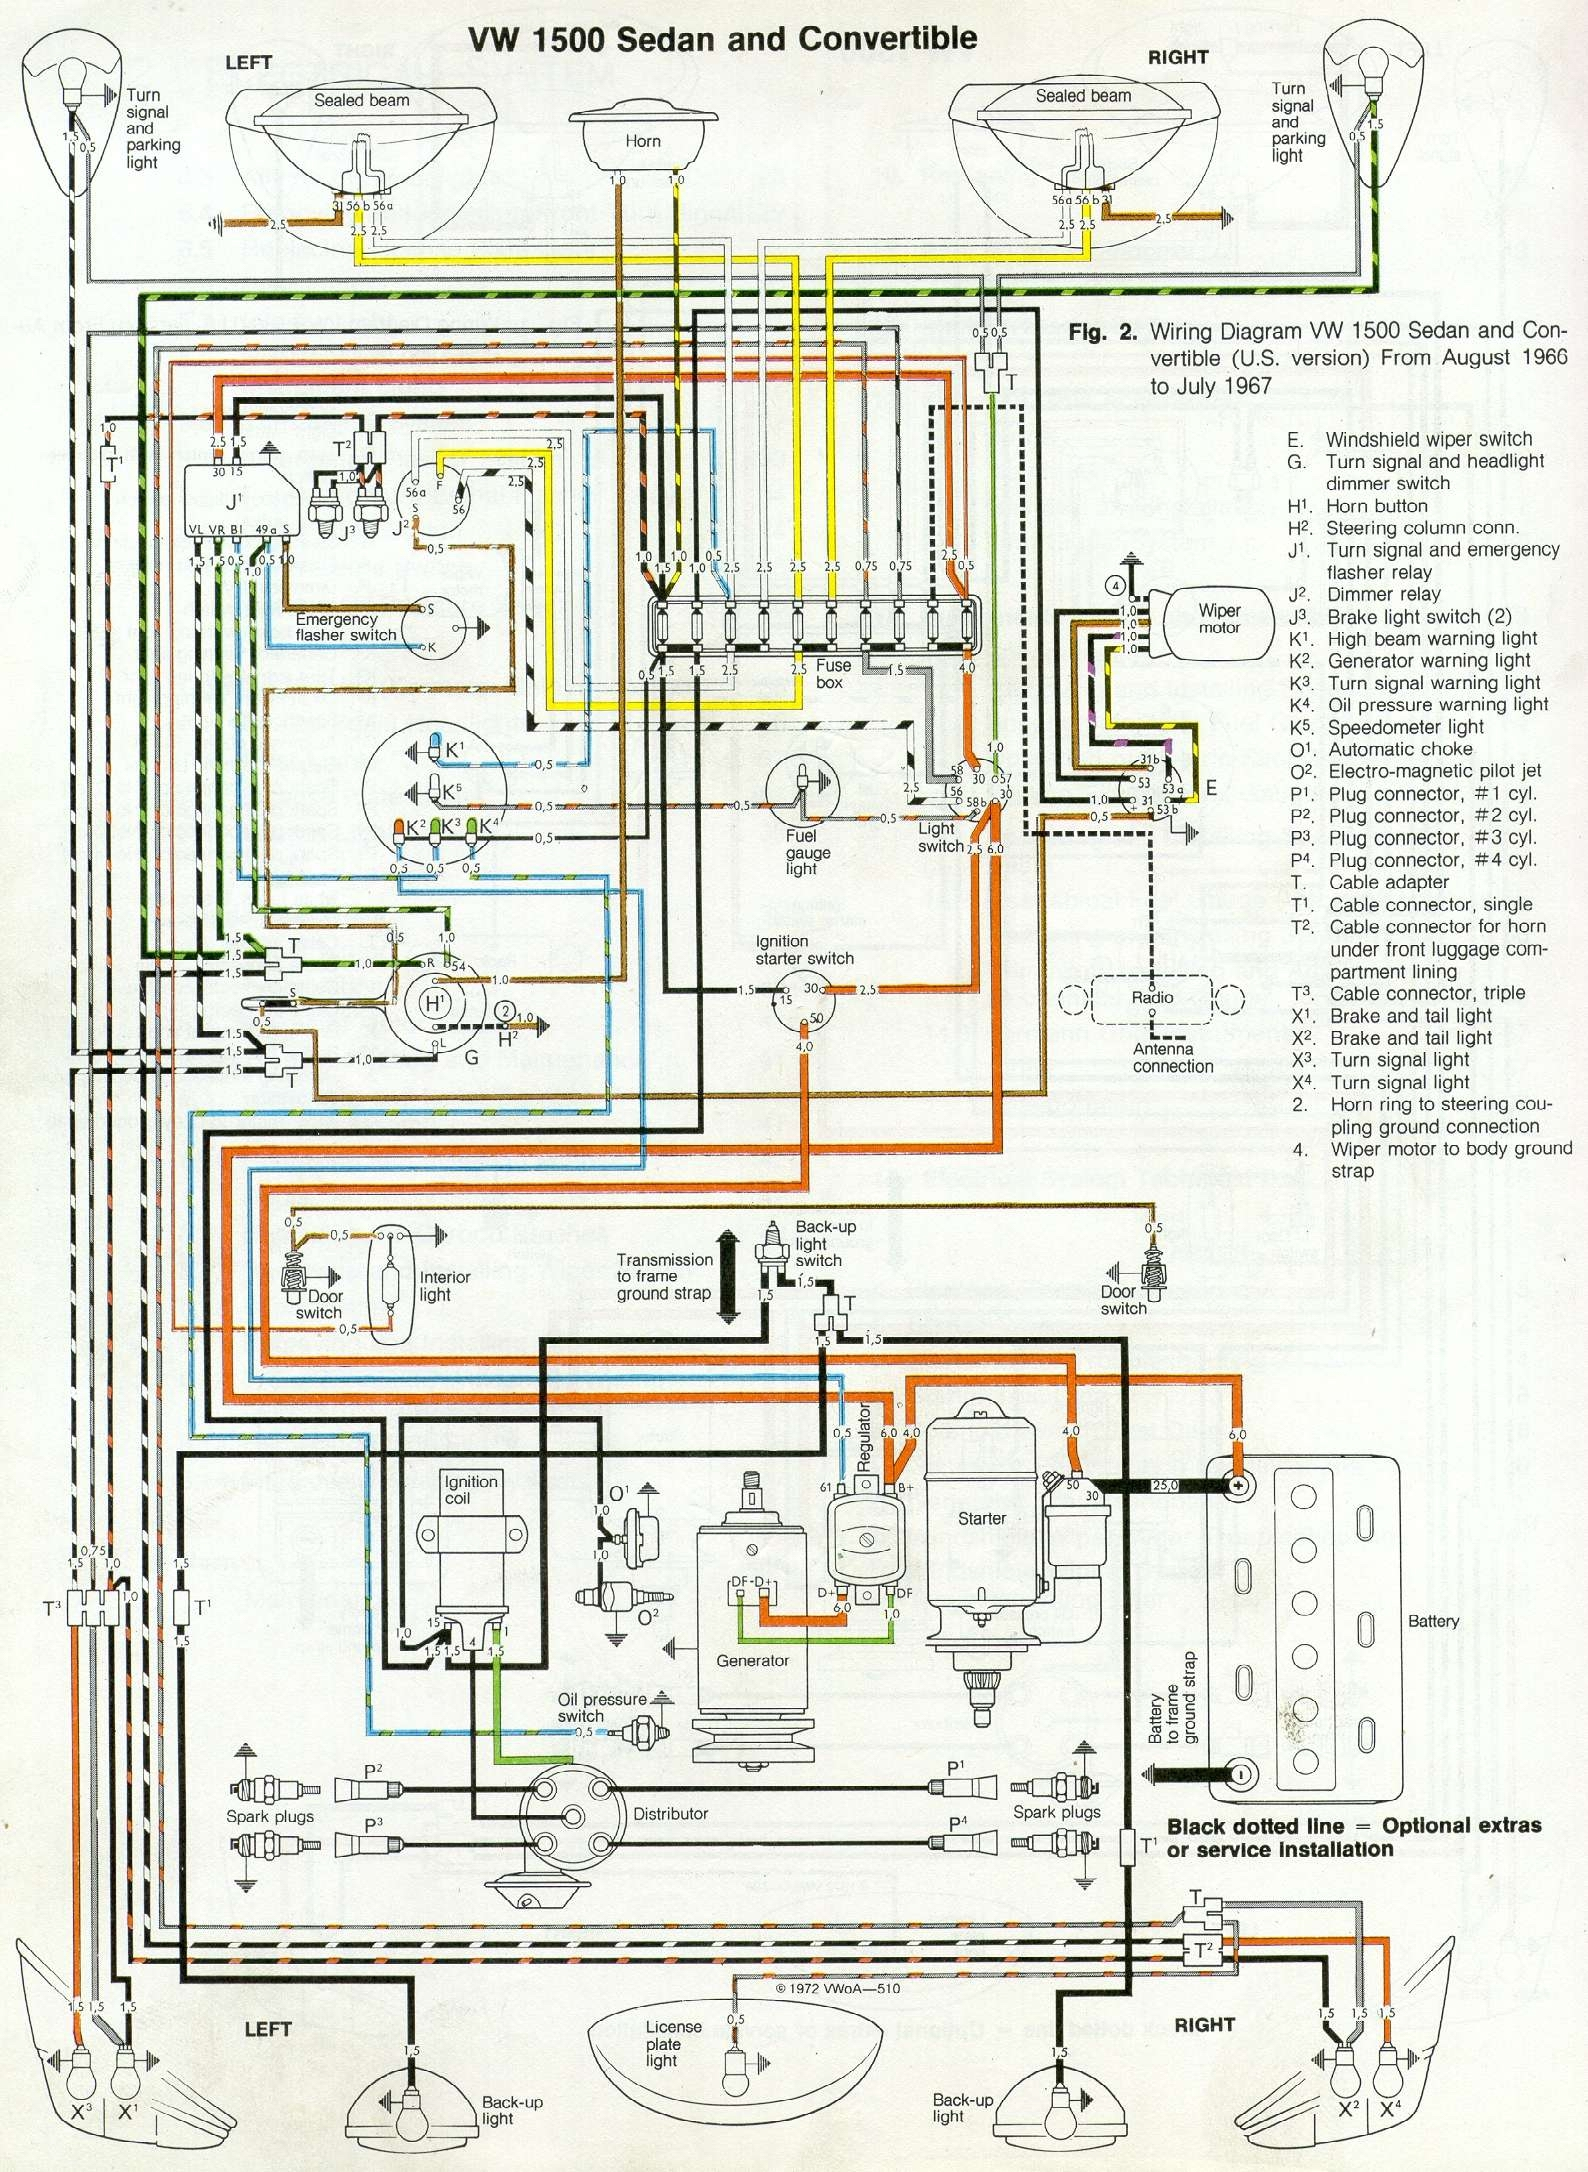 1966 Volkswagen Wiring Diagram Residential Electrical Symbols \u2022 12 Fuse  Box Volkswagen Bus 1966 Vw Bus Fuse Box